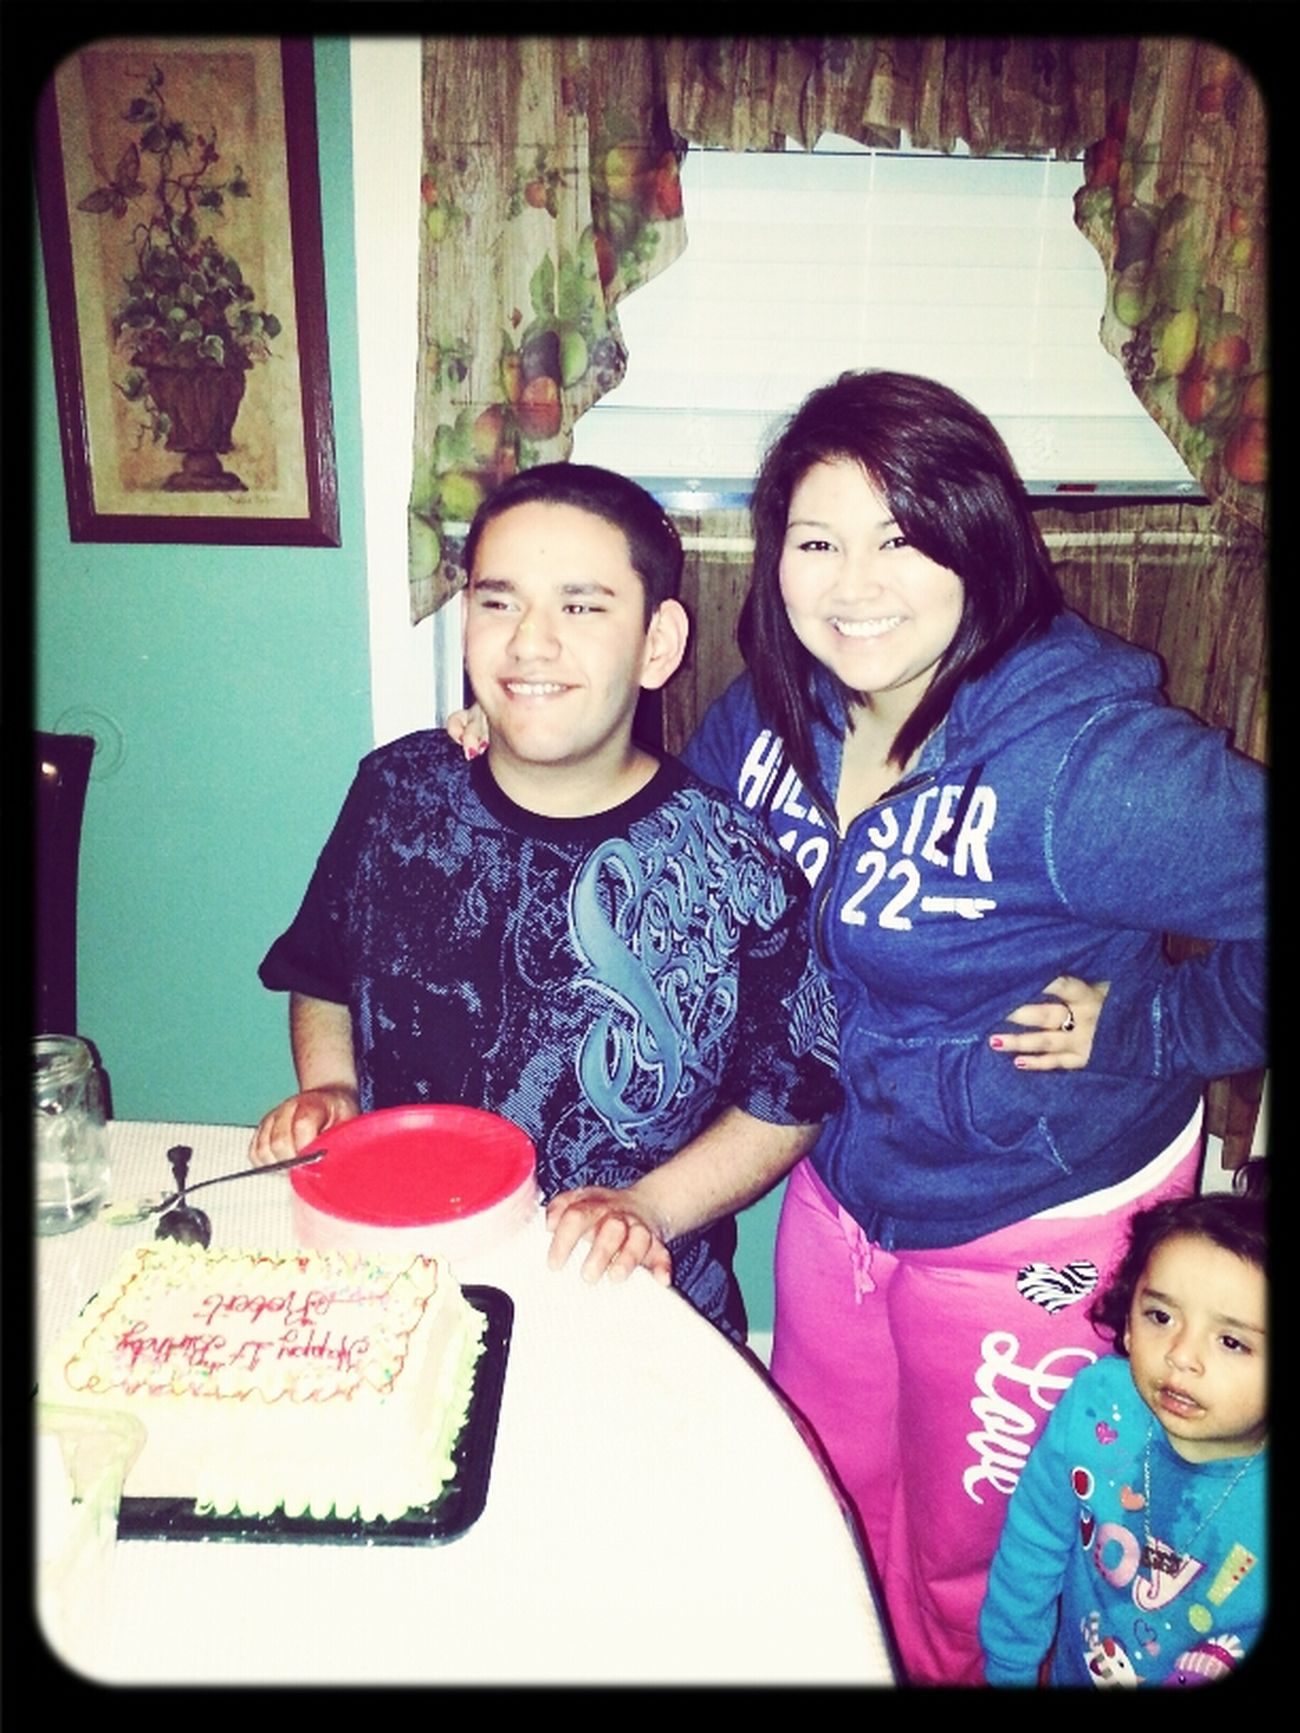 My Baby Brother S Birthday!